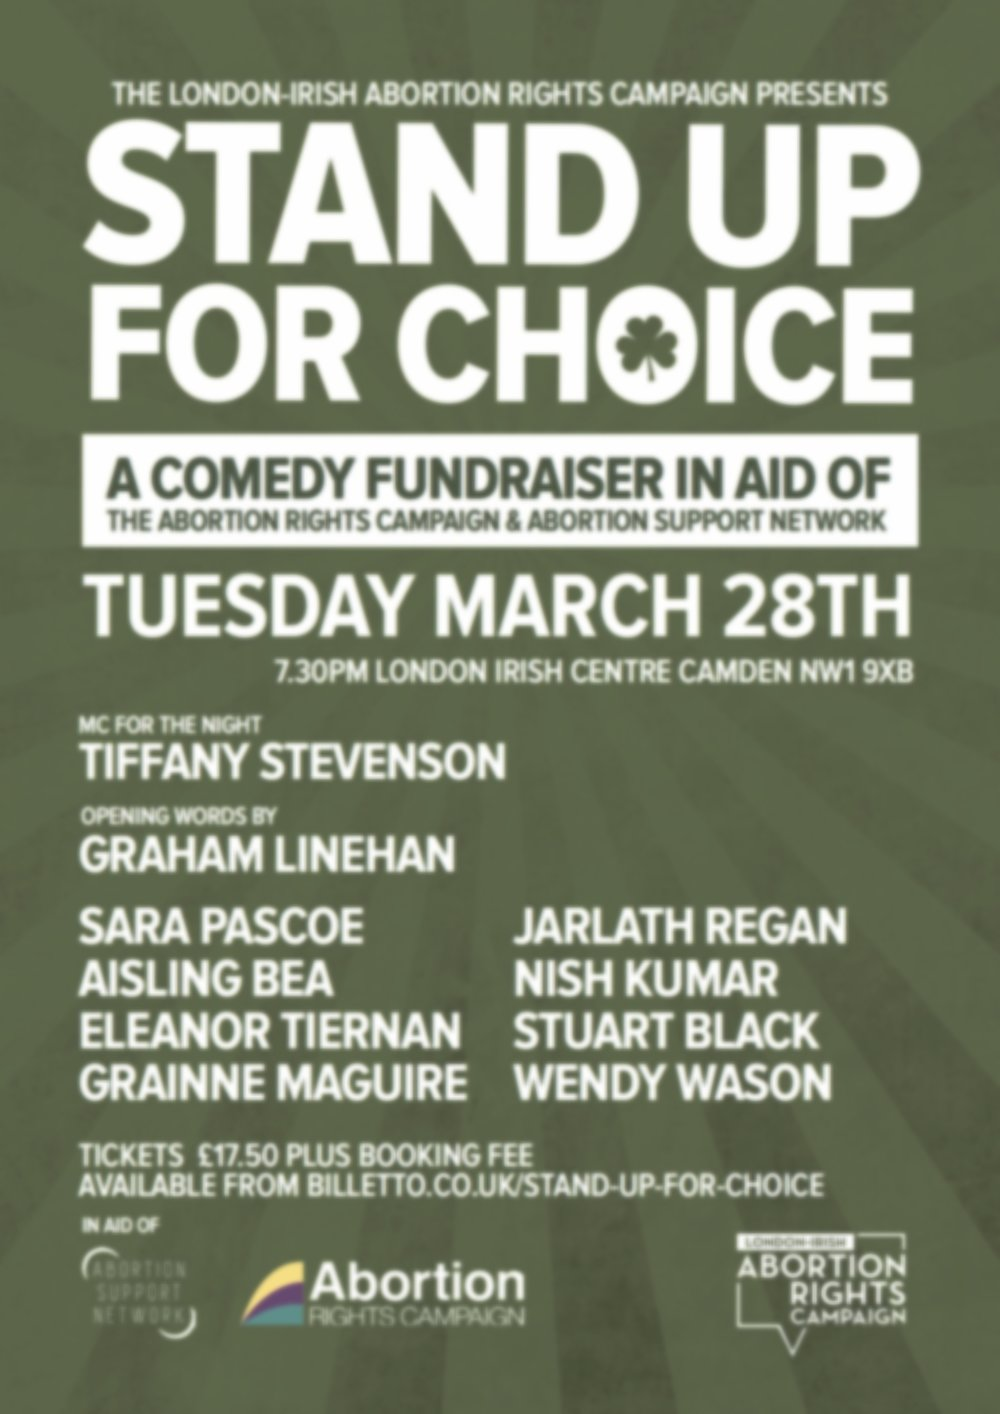 Graham Linehan invited to speak at comedy event to support Stand Up For Choice